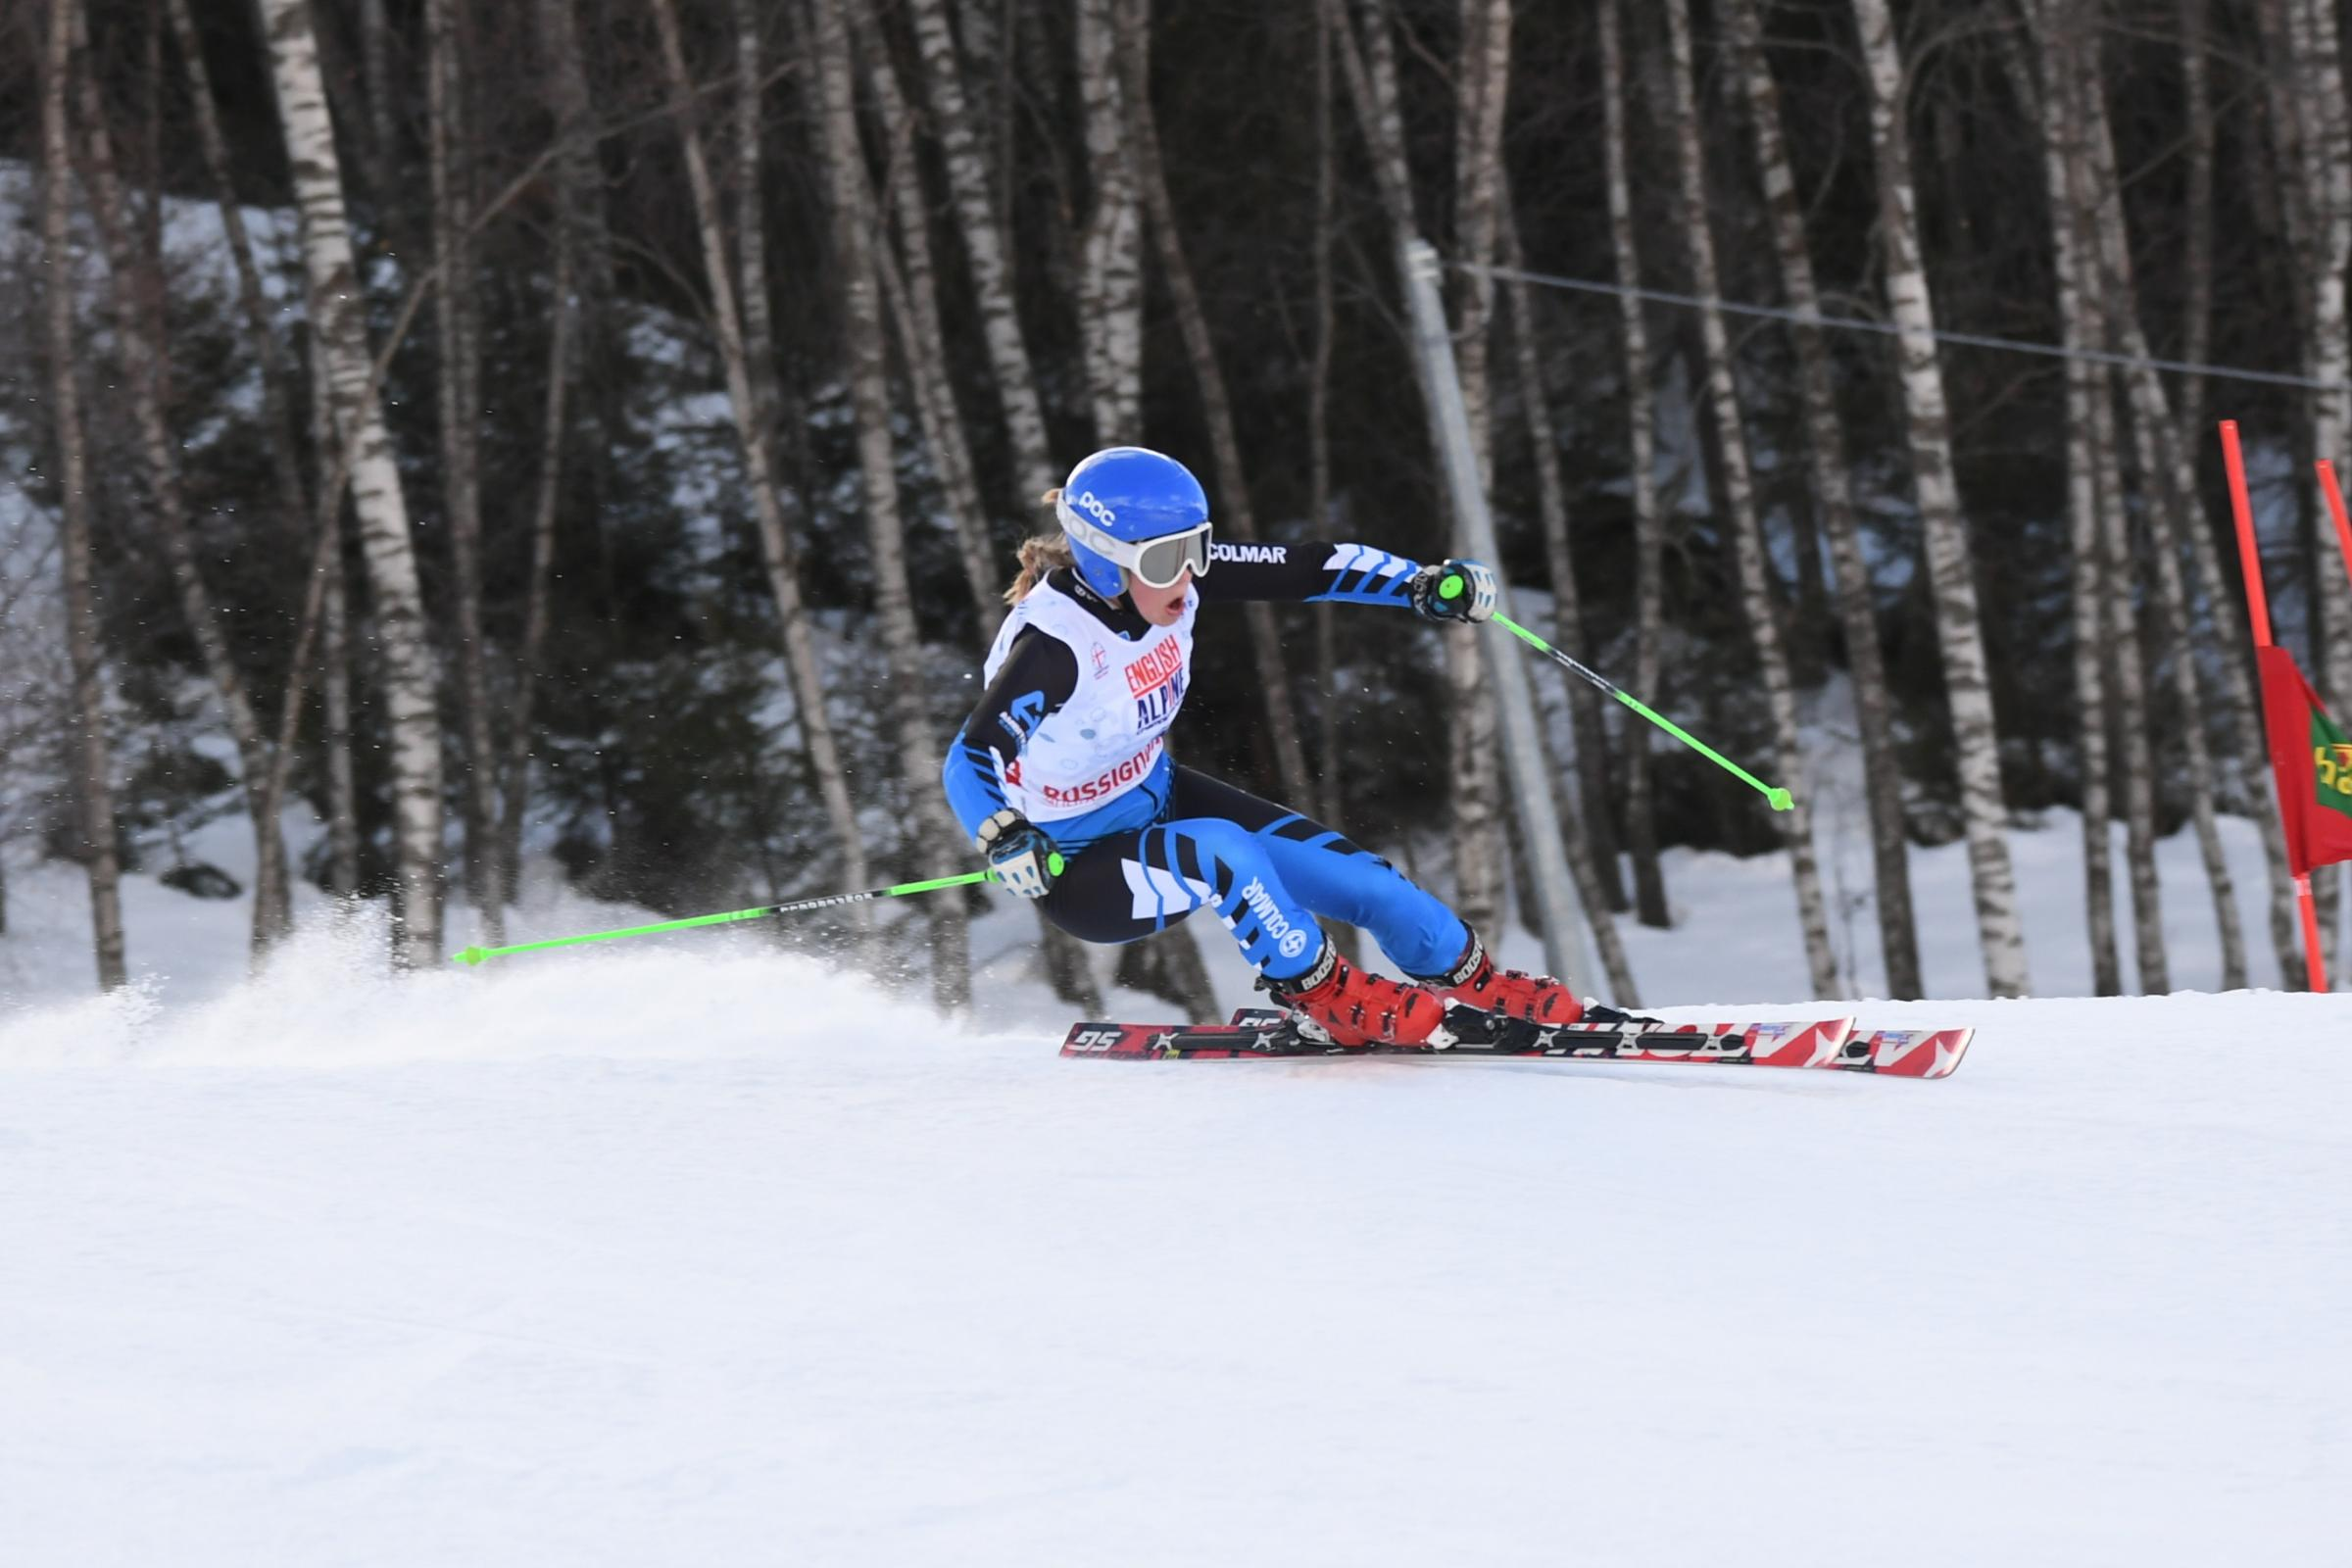 Sophie Foster won gold at the English Alpine Championships